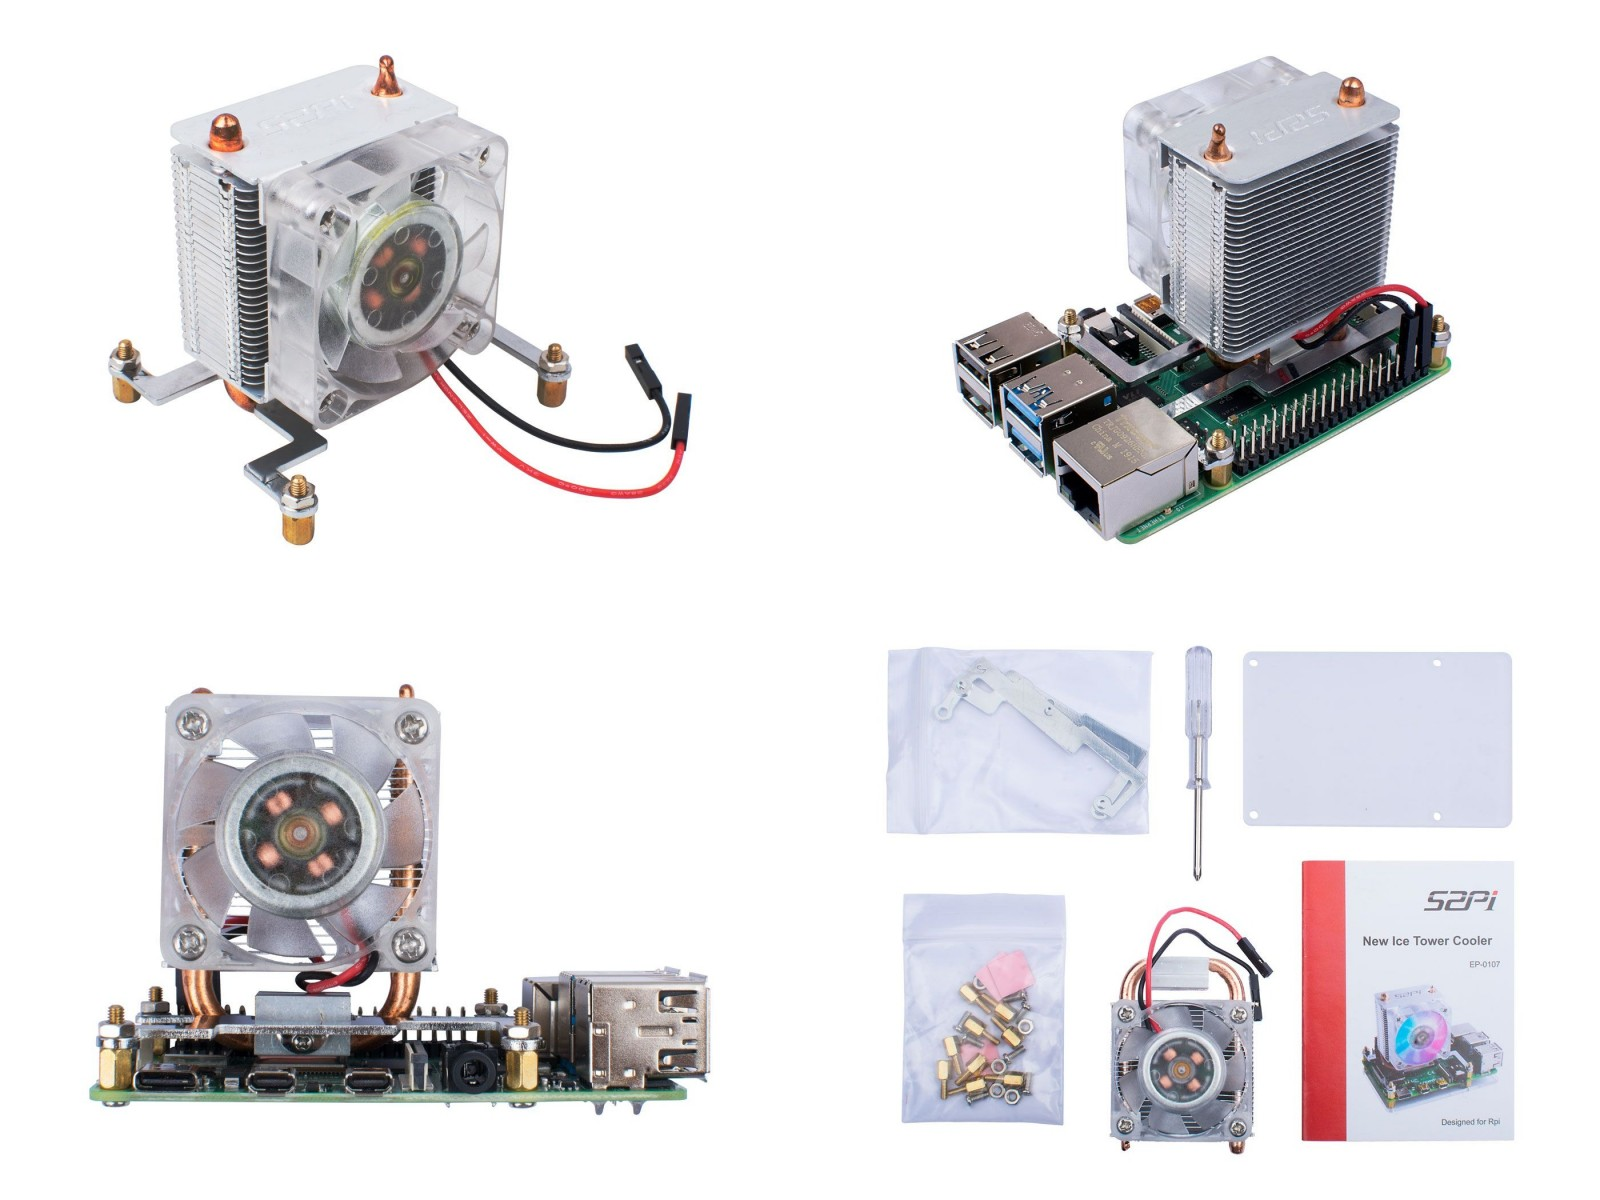 ICE-Tower-CPU-Cooling-Fan-for-Raspberry-Pi-4in1